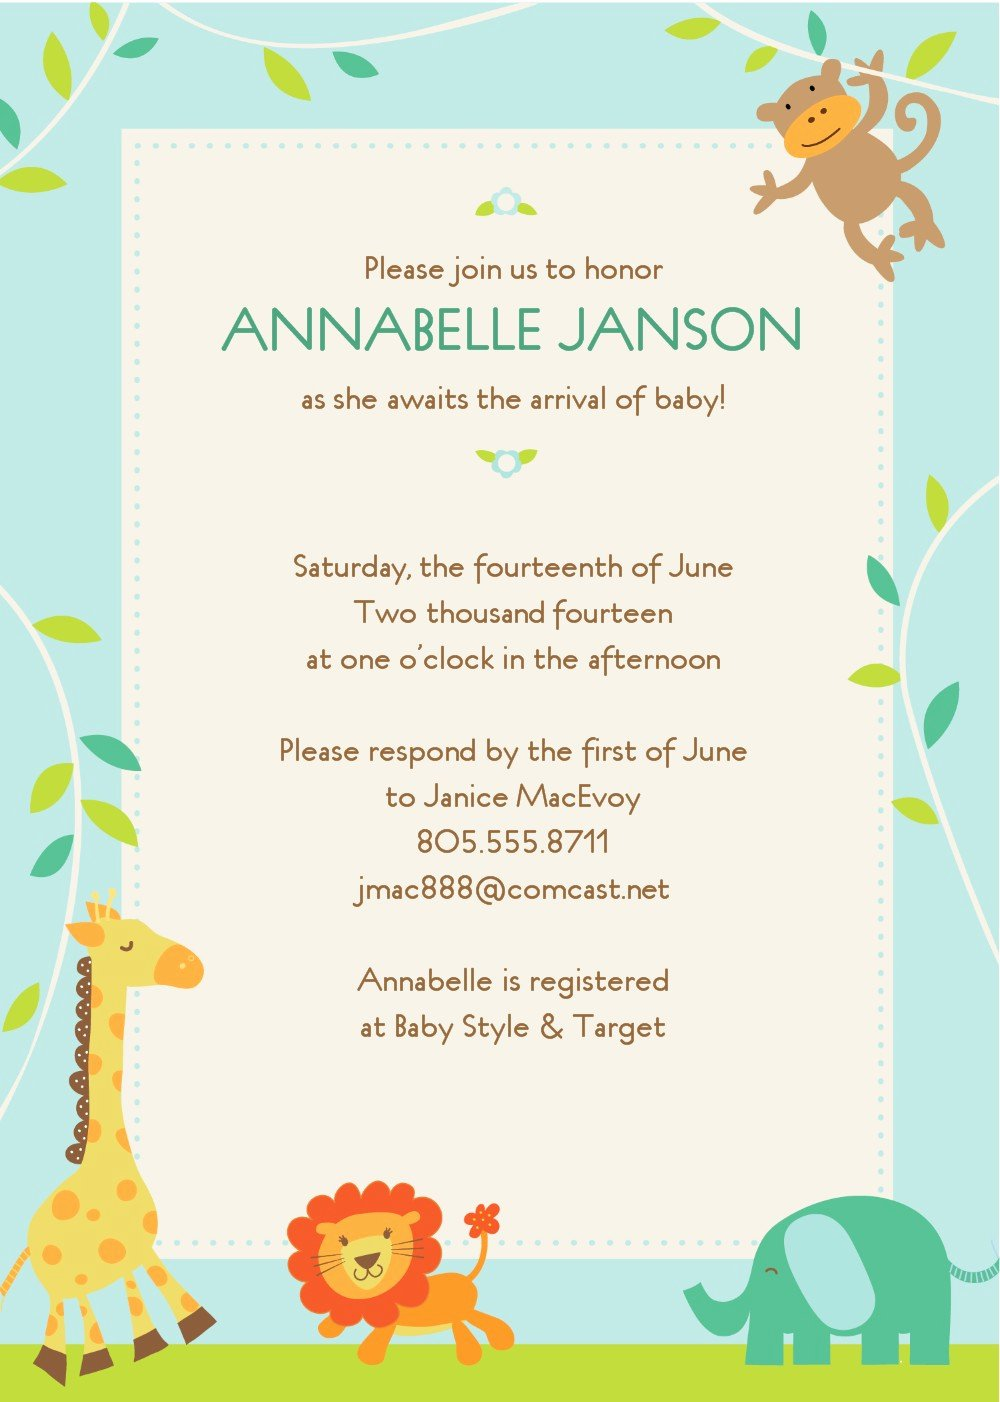 Free Baby Invitation Template Luxury Free Baby Shower Invitation Templates to Print at Home